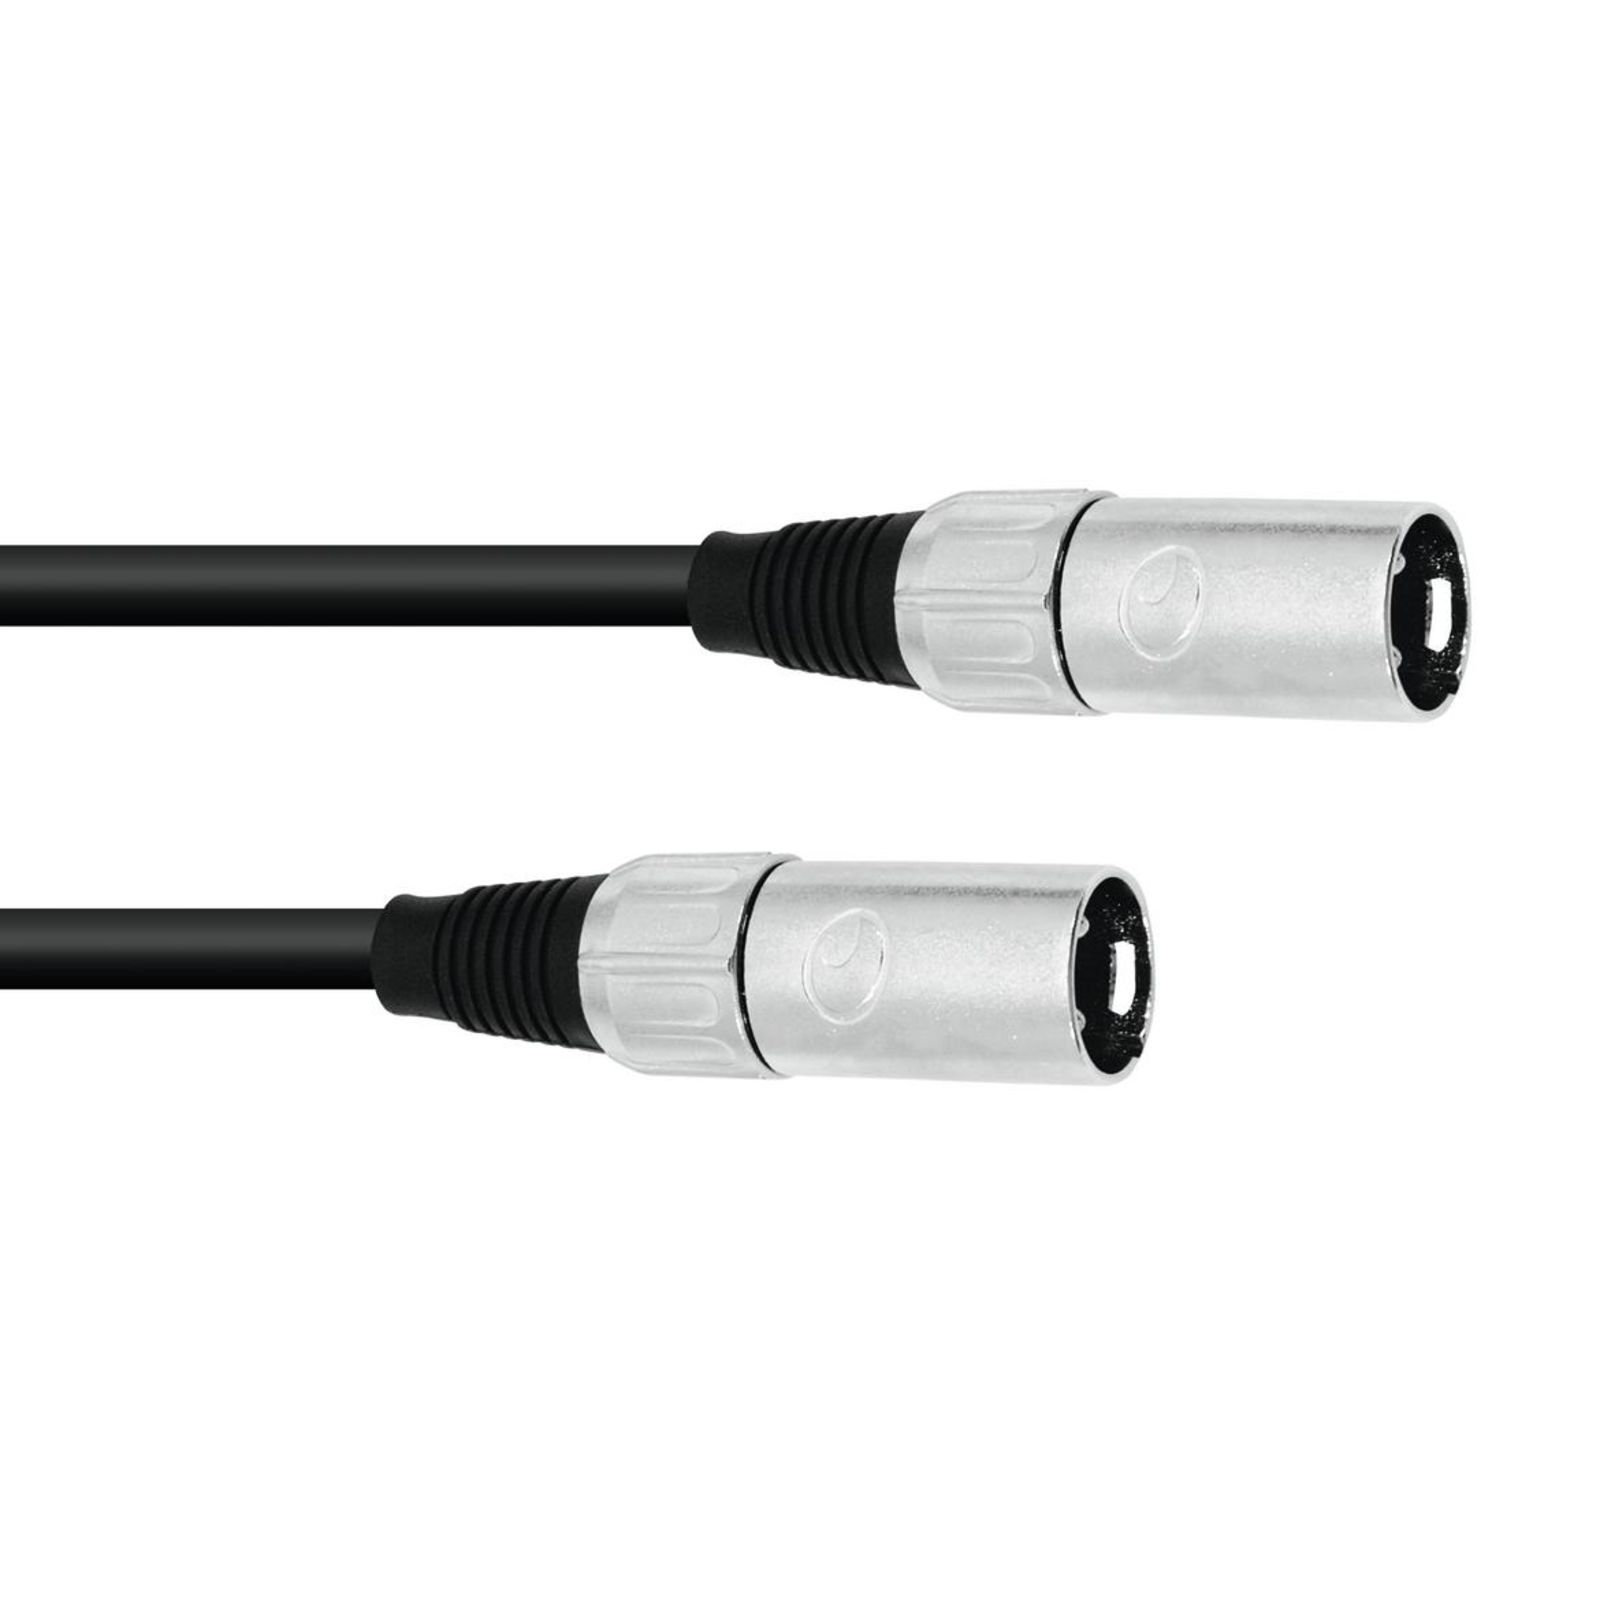 Omnitronic Adapter Cable XLR(M)/XLR(M) 0.2m Black Product Image